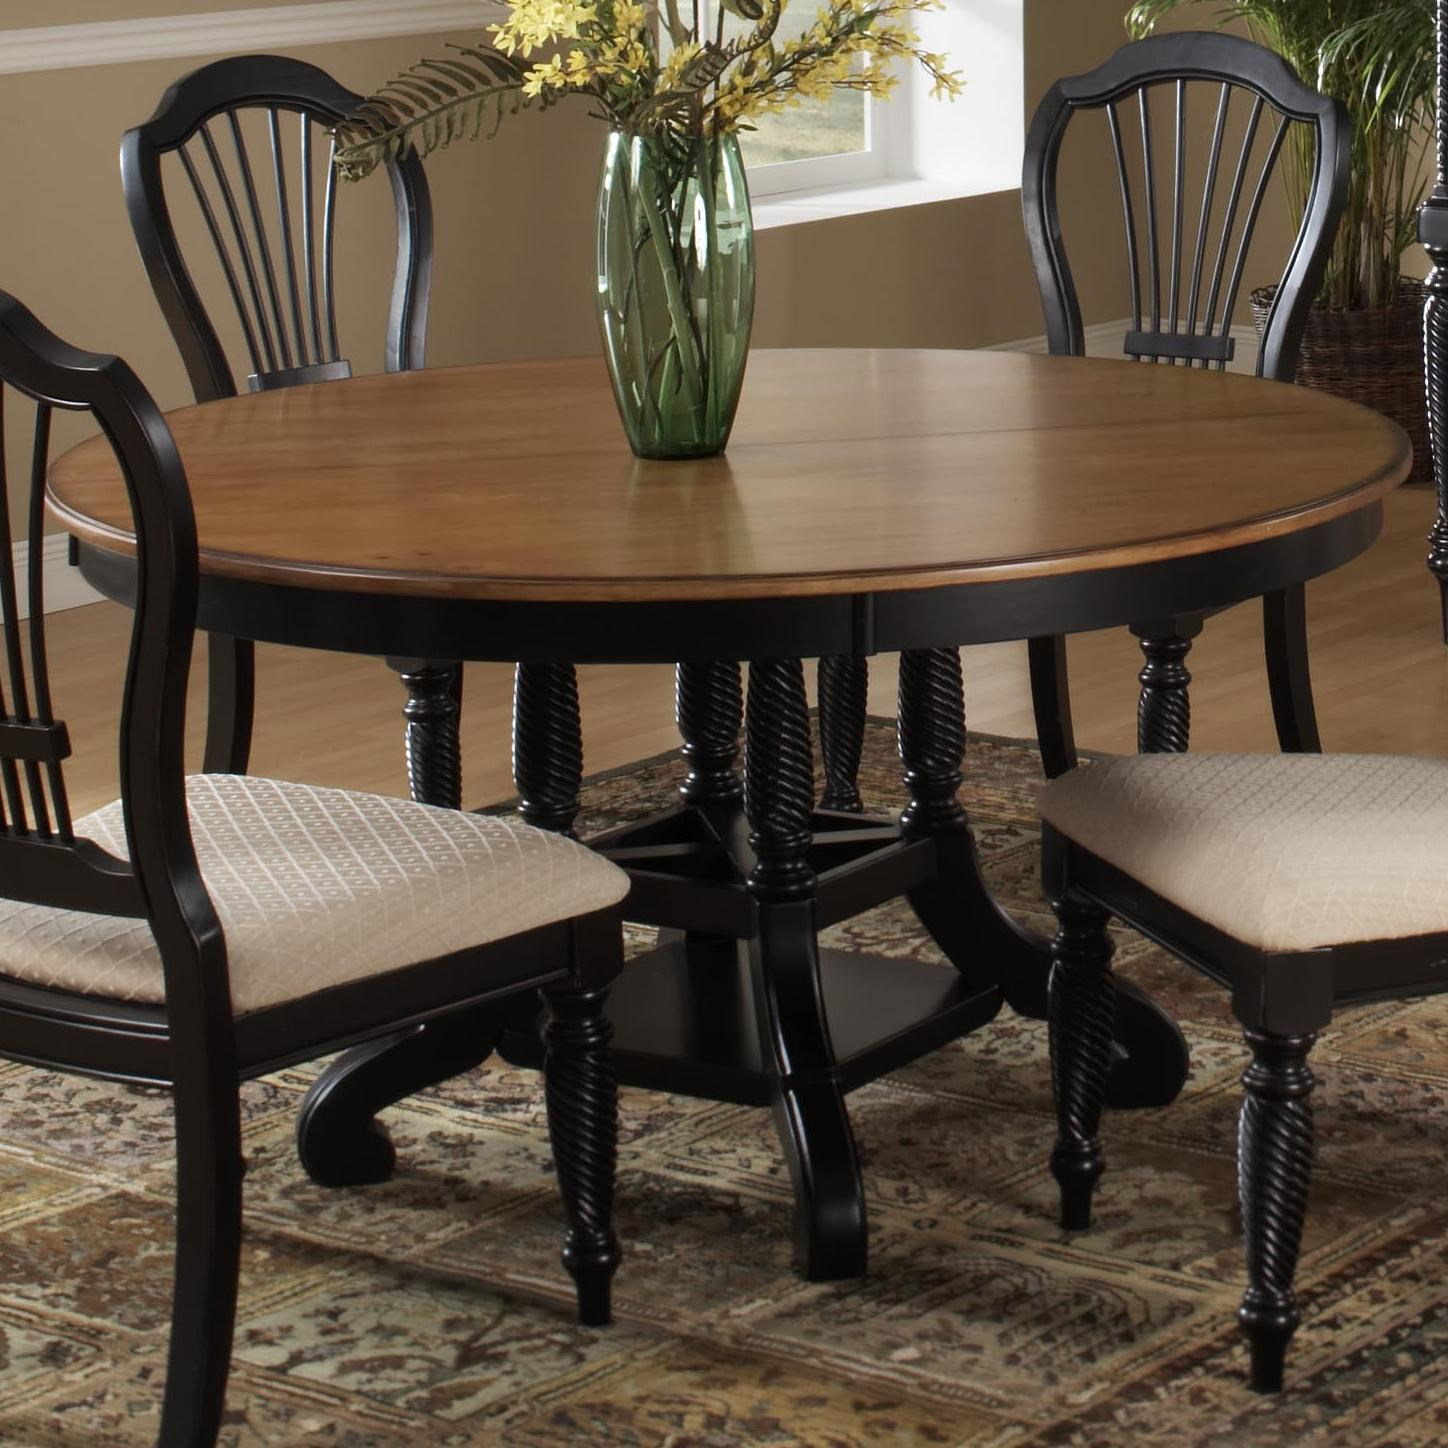 round dining room table with leaf. Hillsdale Wilshire Round Two-Tone Leaf Dining Table Room With